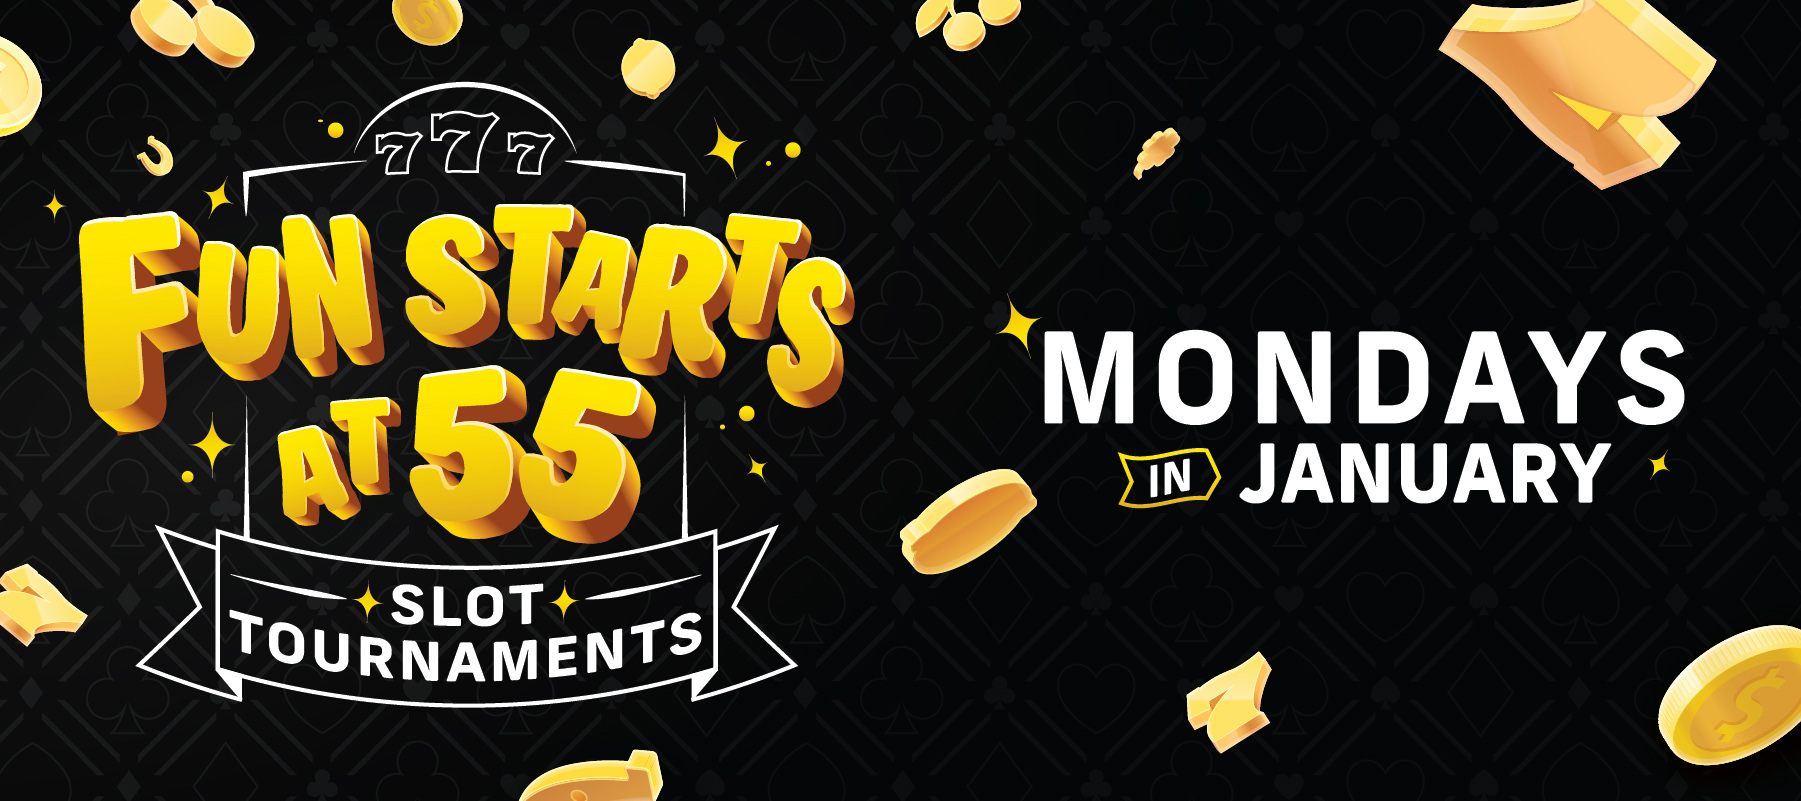 Fun Starts at 55 Slot Tournaments